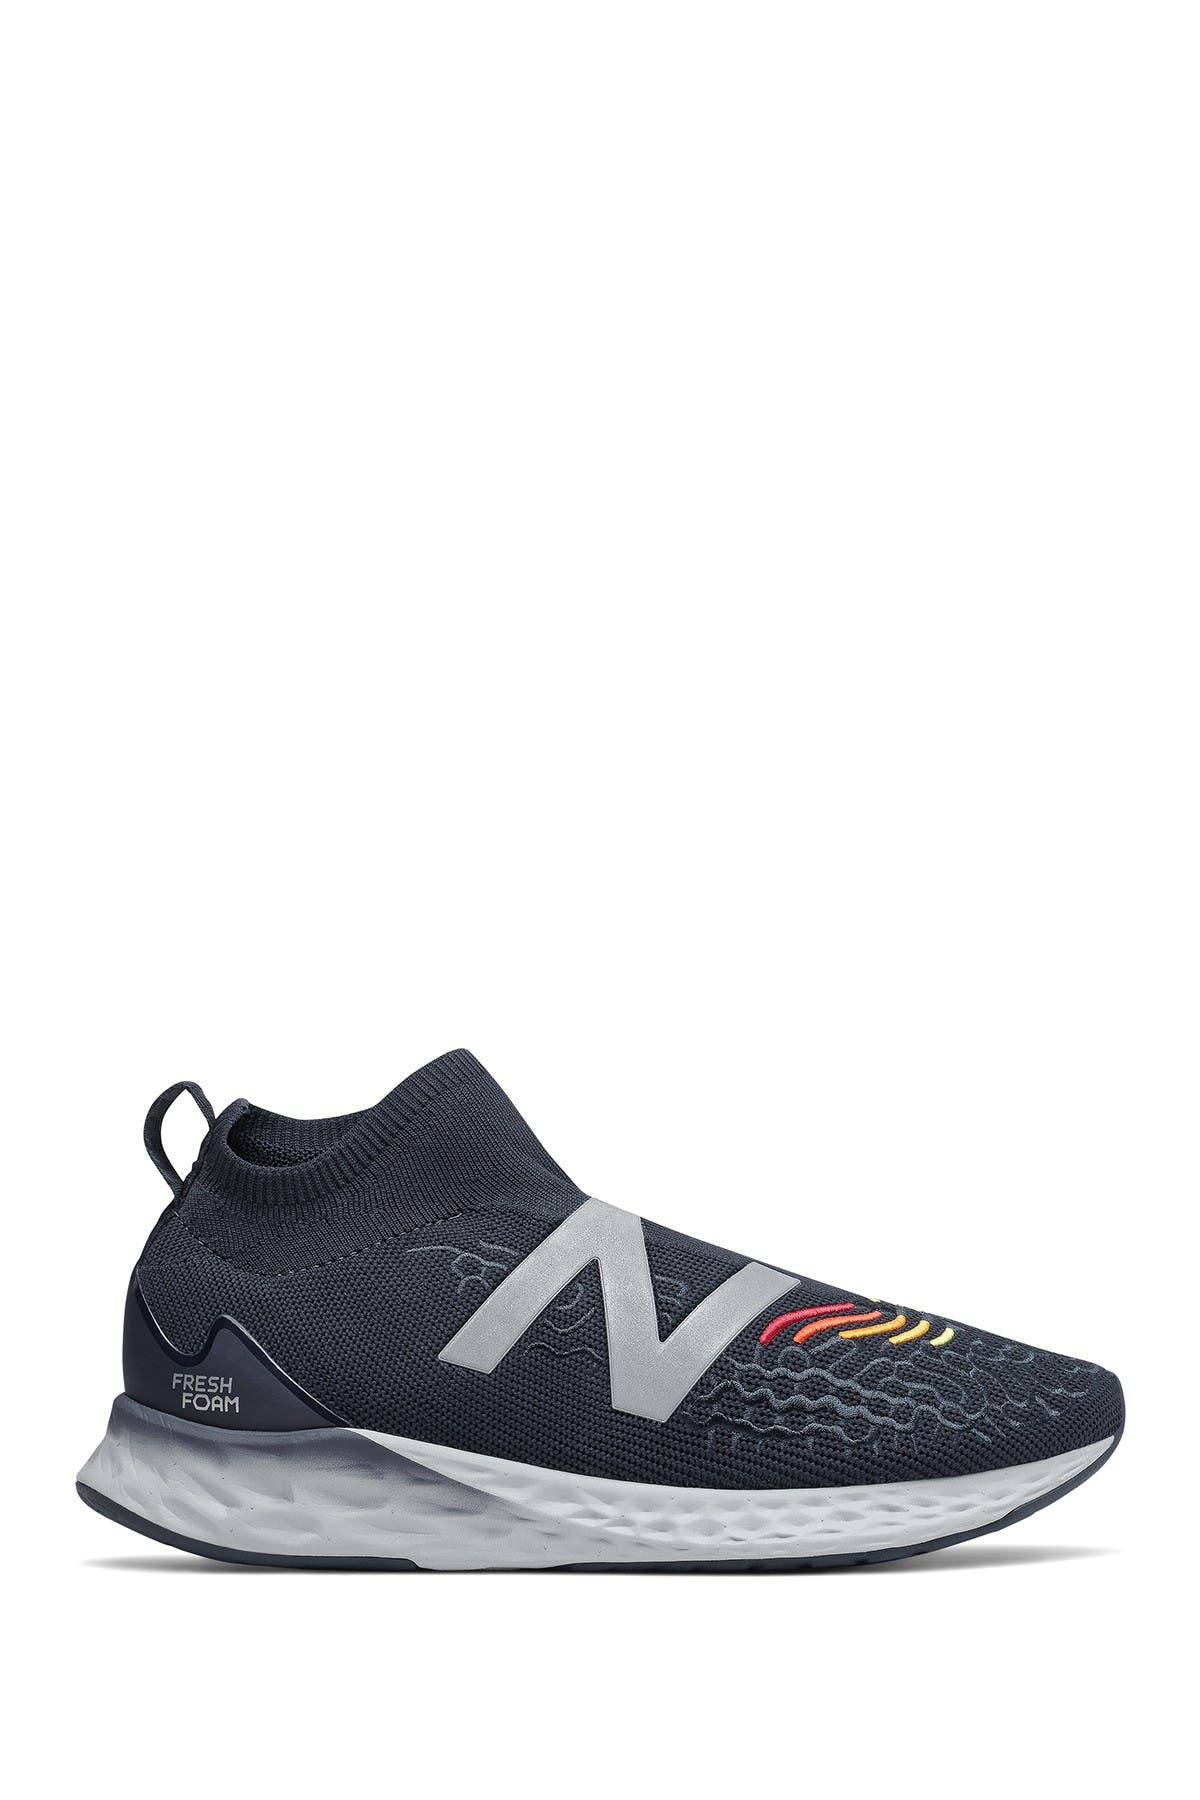 Image of New Balance Tekela V3 Running Shoe